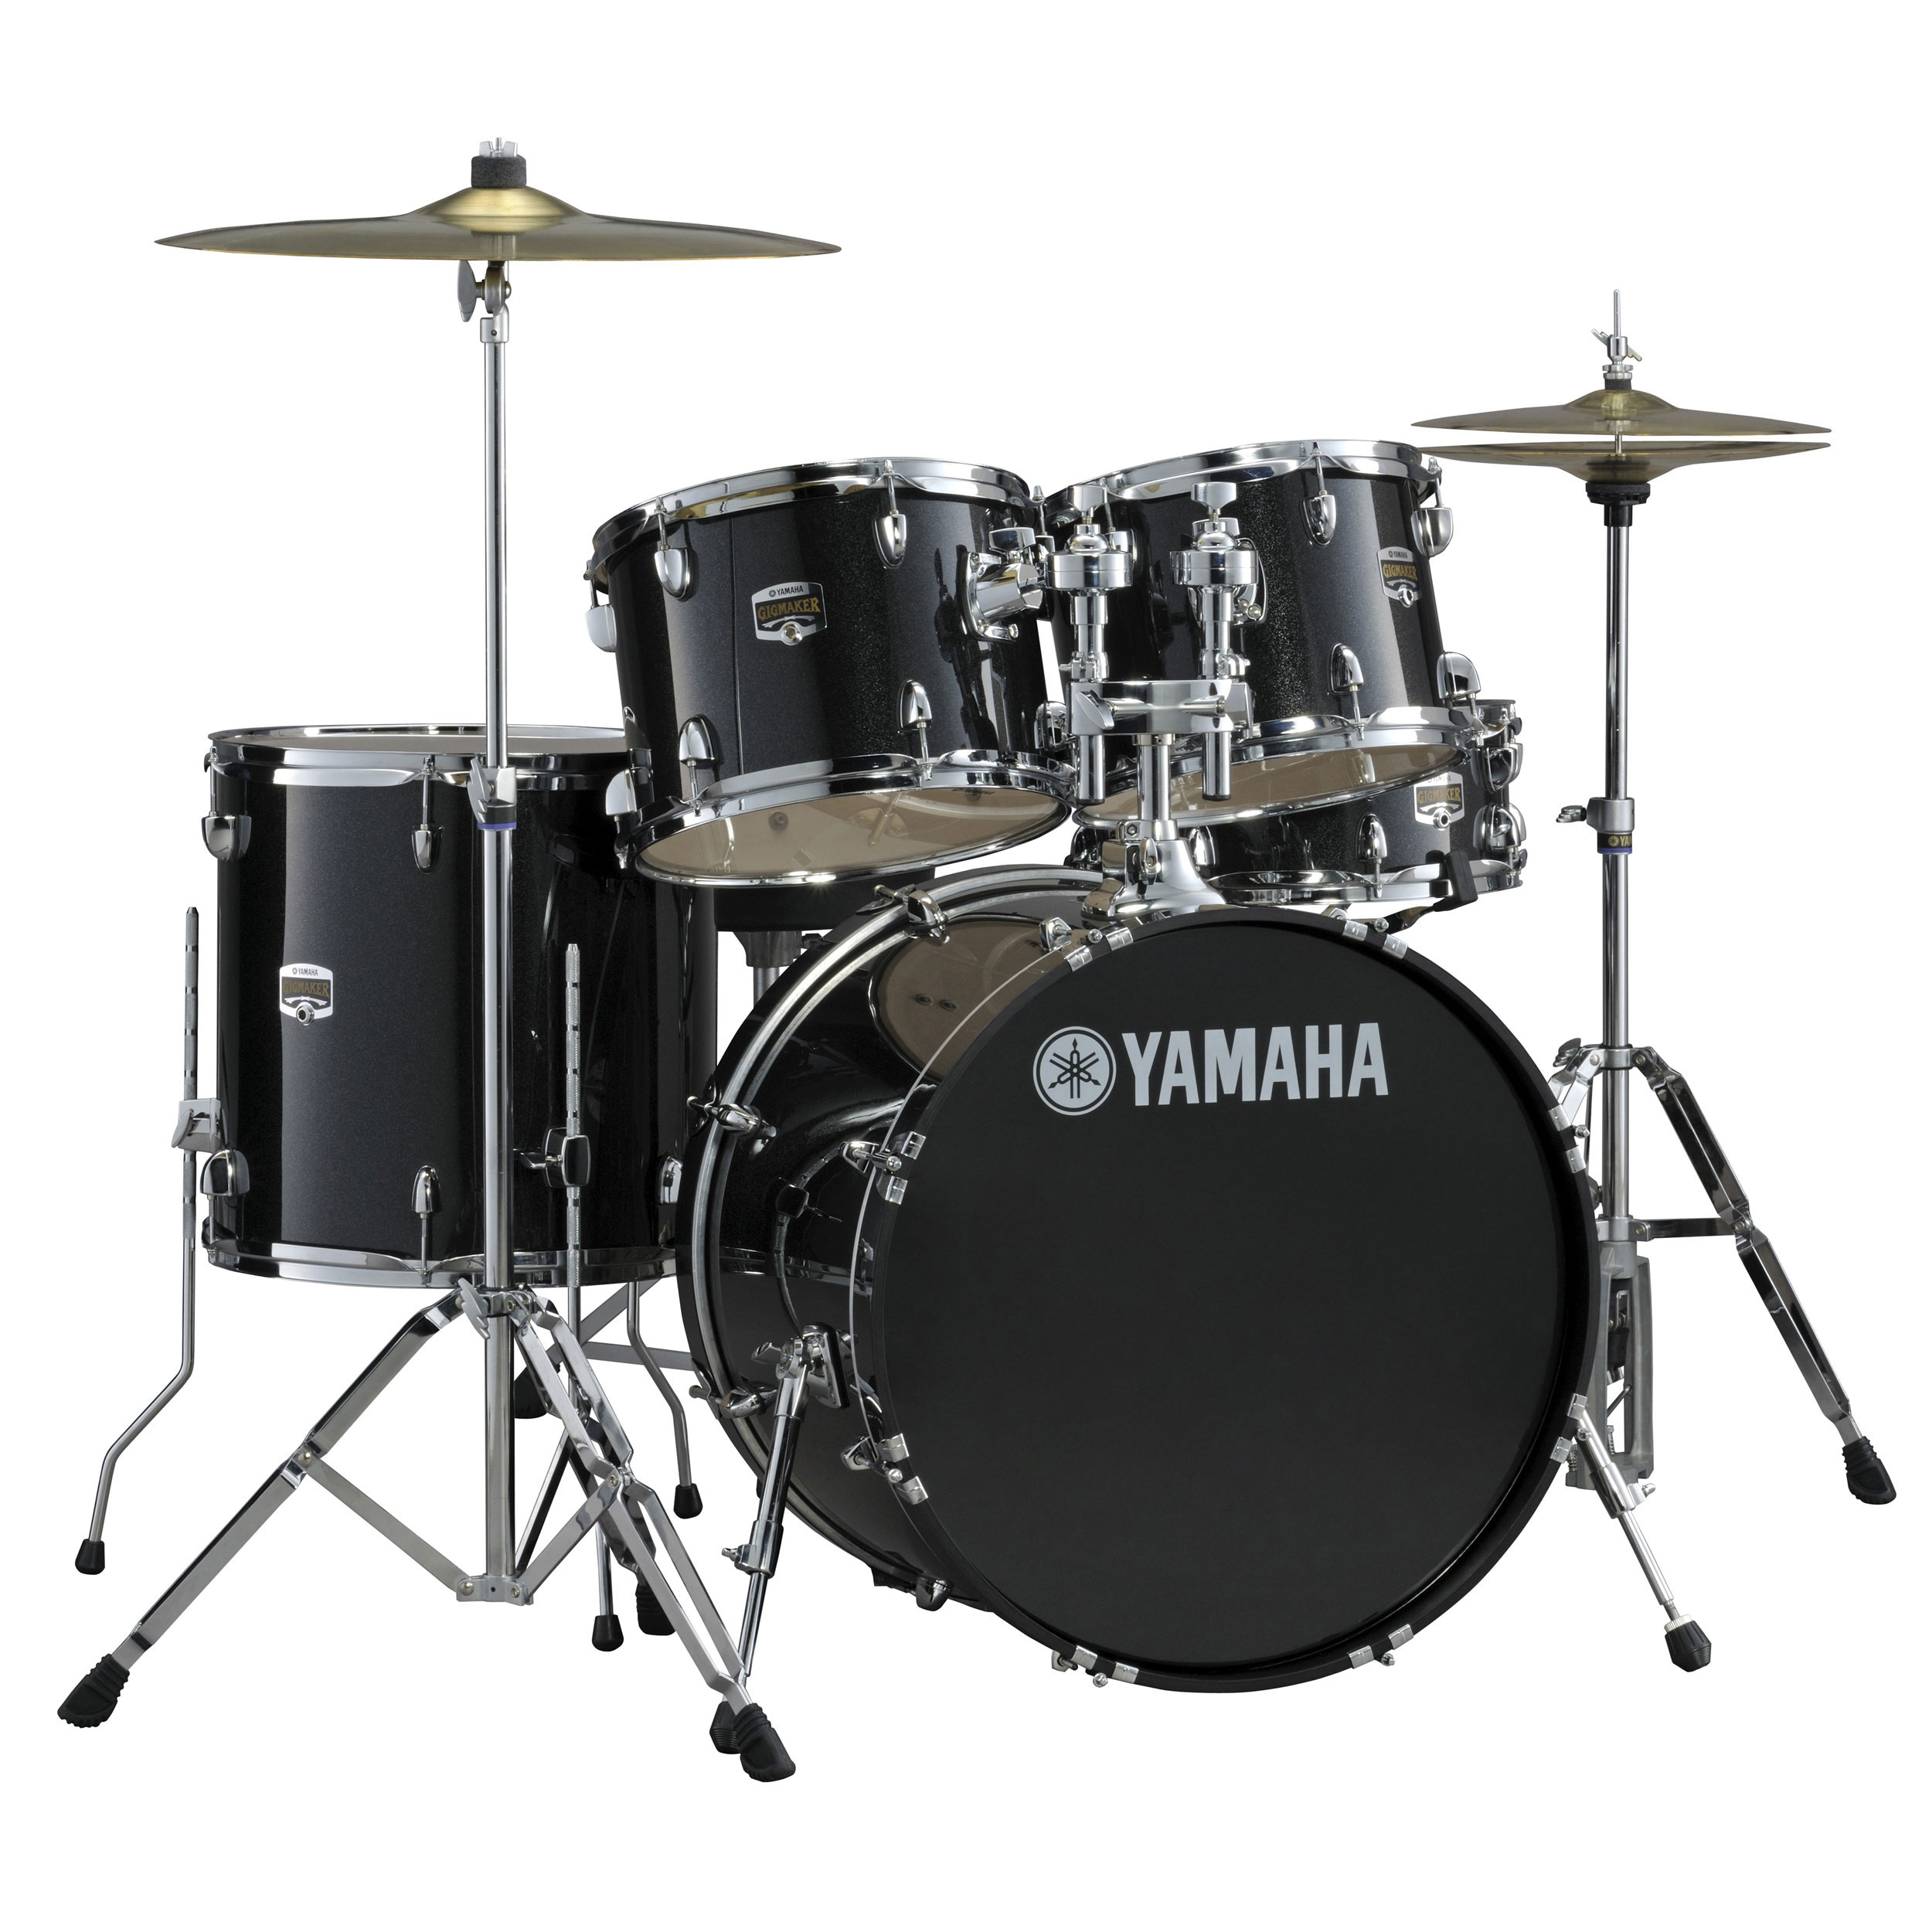 "Yamaha GigMaker 5-Piece Drum Set with Hardware (20"" Bass, 10/12/14"" Toms, 14"" Snare)"